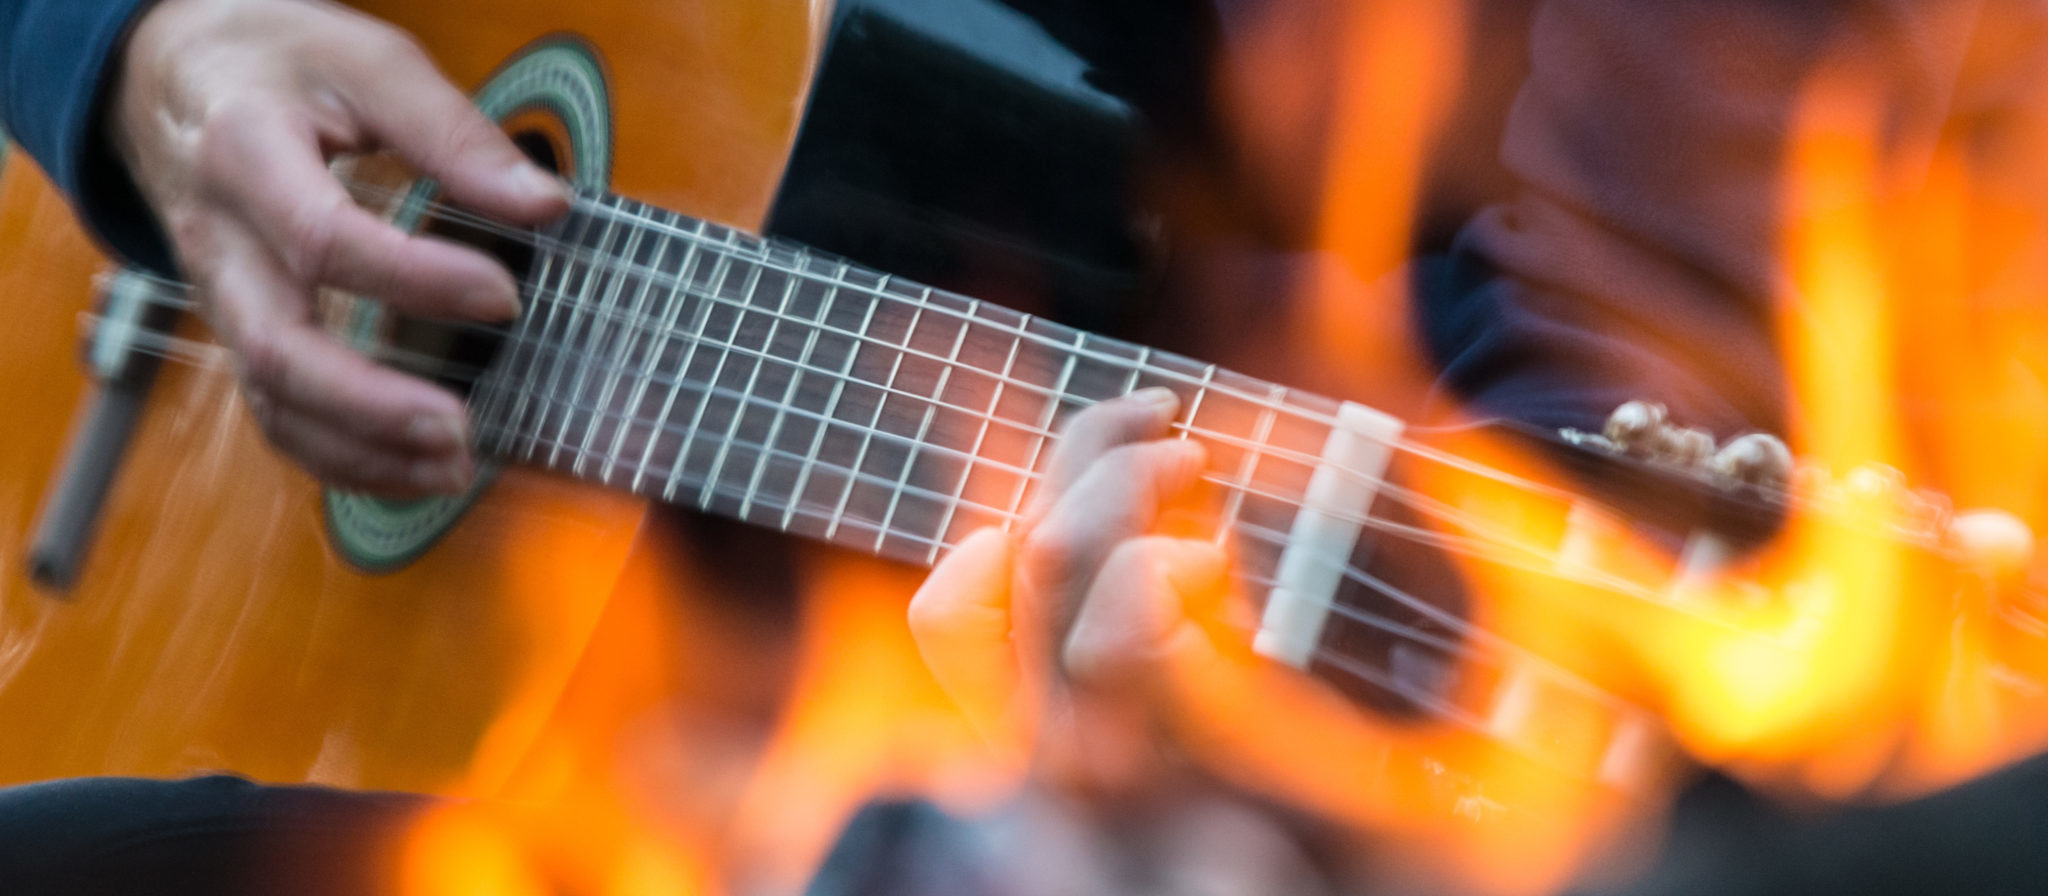 Without folk musicians such as Woody Guthrie, our campfire singing tradition would be quite a different style.